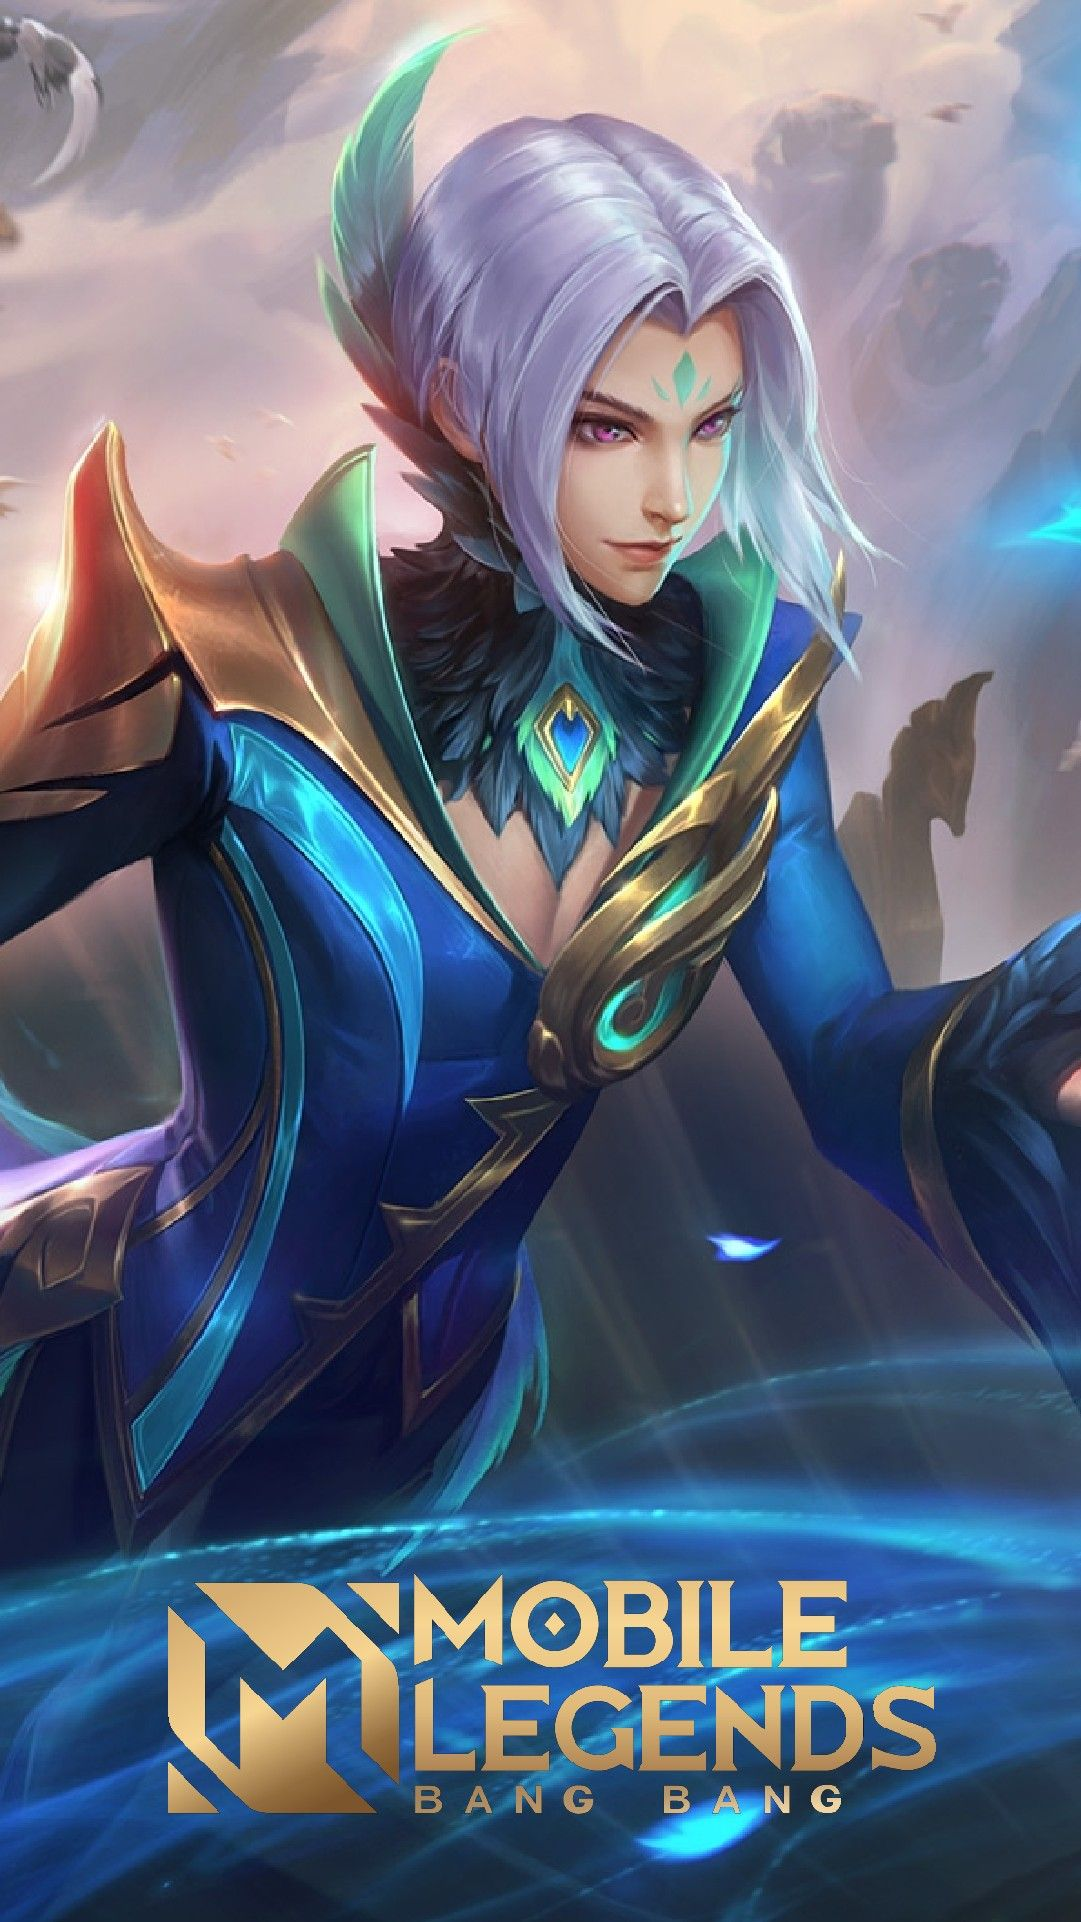 Pin On Quick Saves Hd 1080p mobile legend hd wallpaper